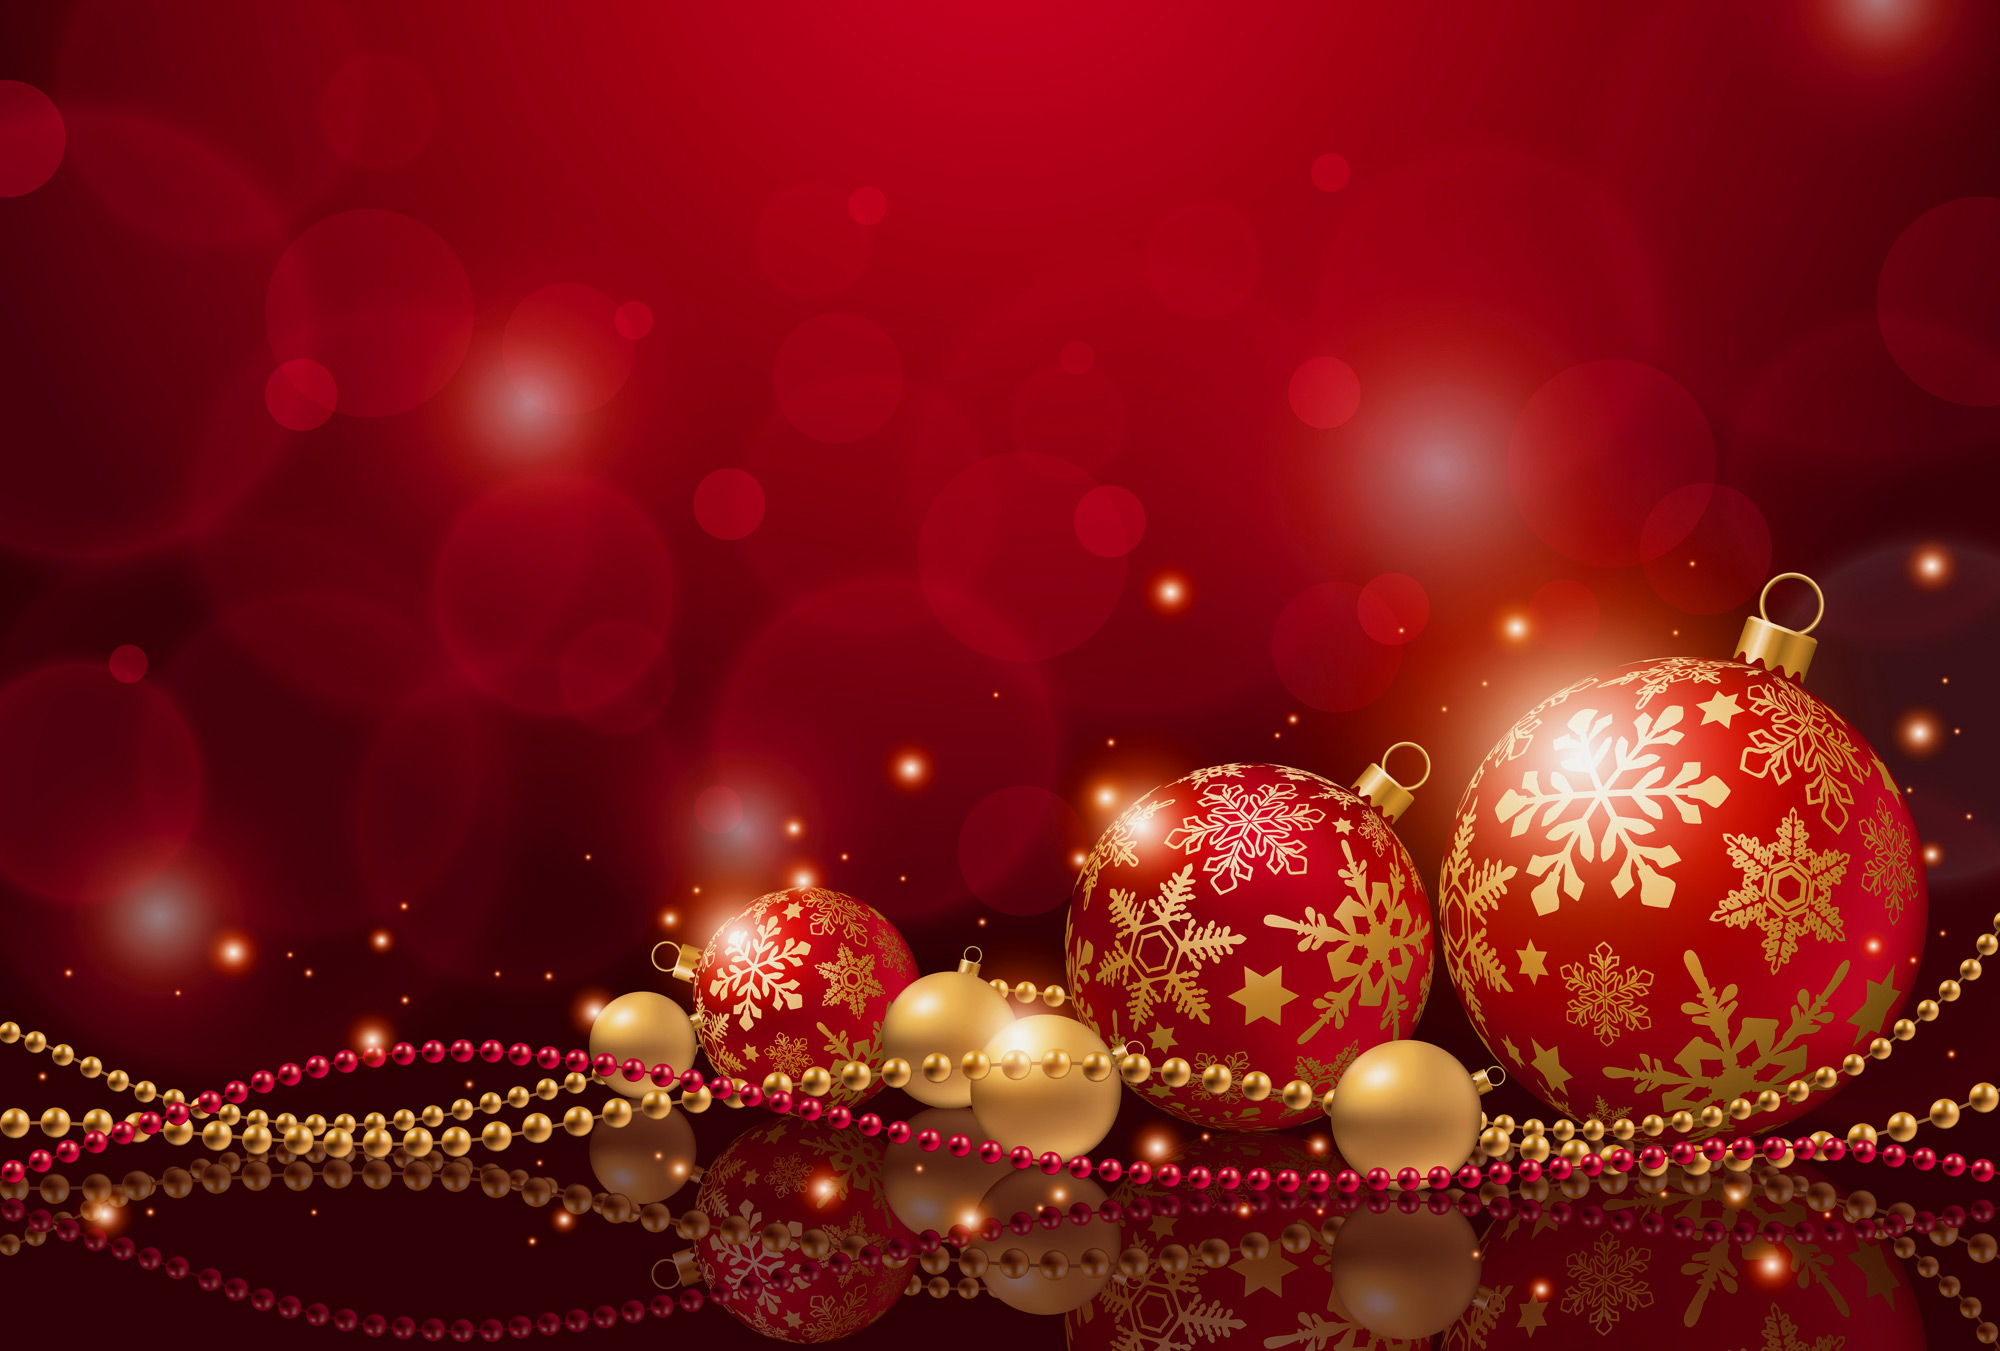 Red Christmas Background with Christmas Balls | Gallery ...